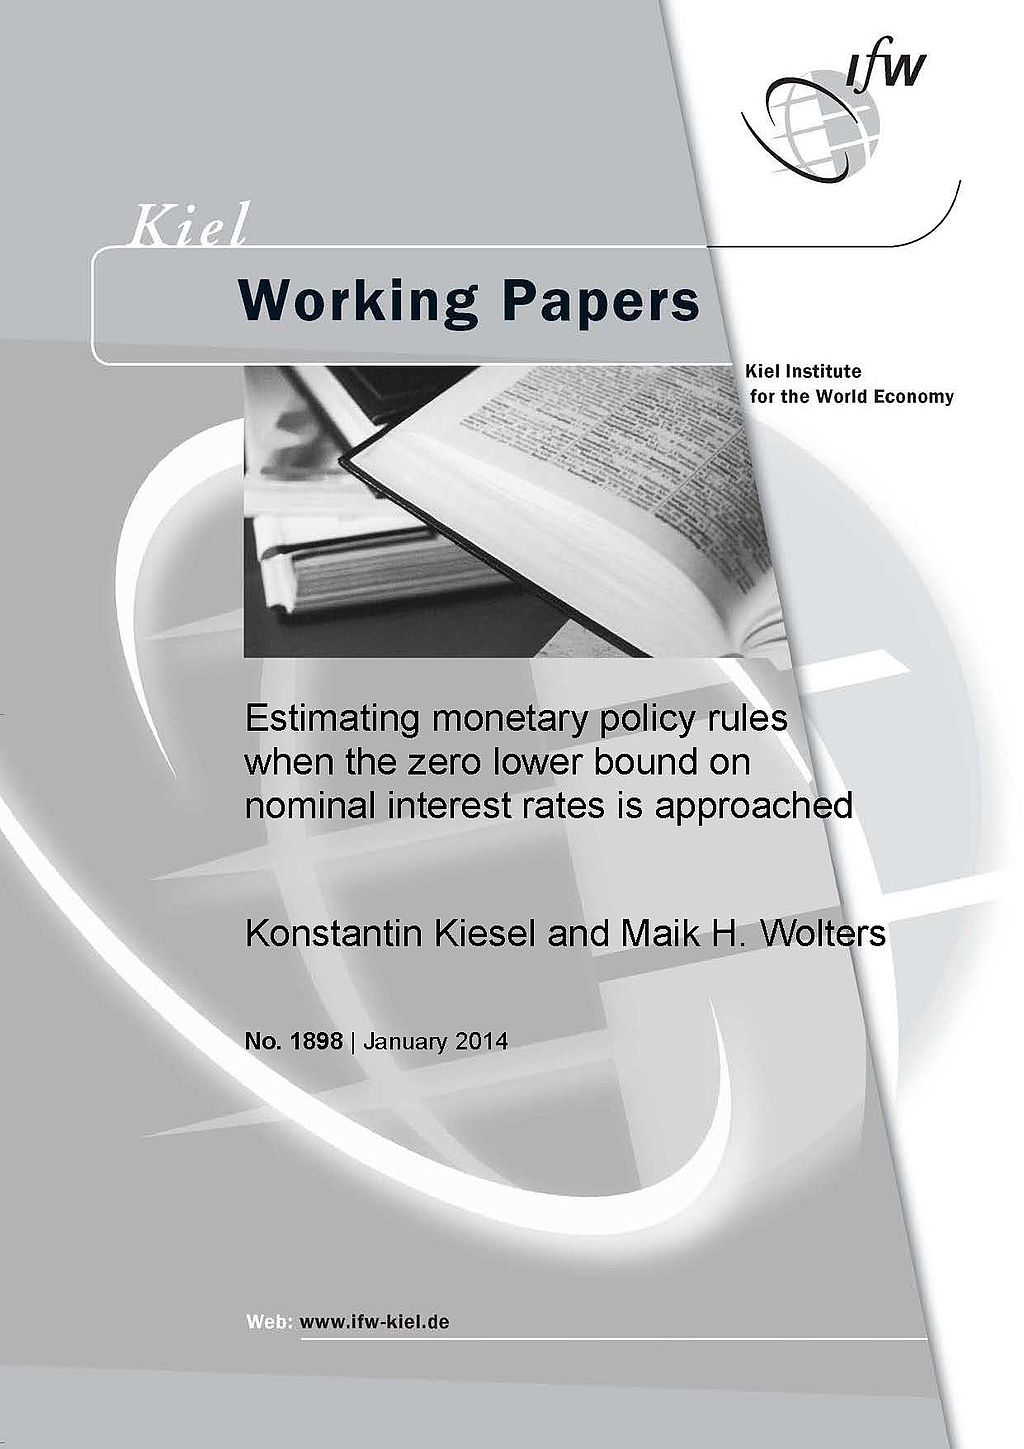 cover_Kiel-Working-Papers_2014-january.jpg